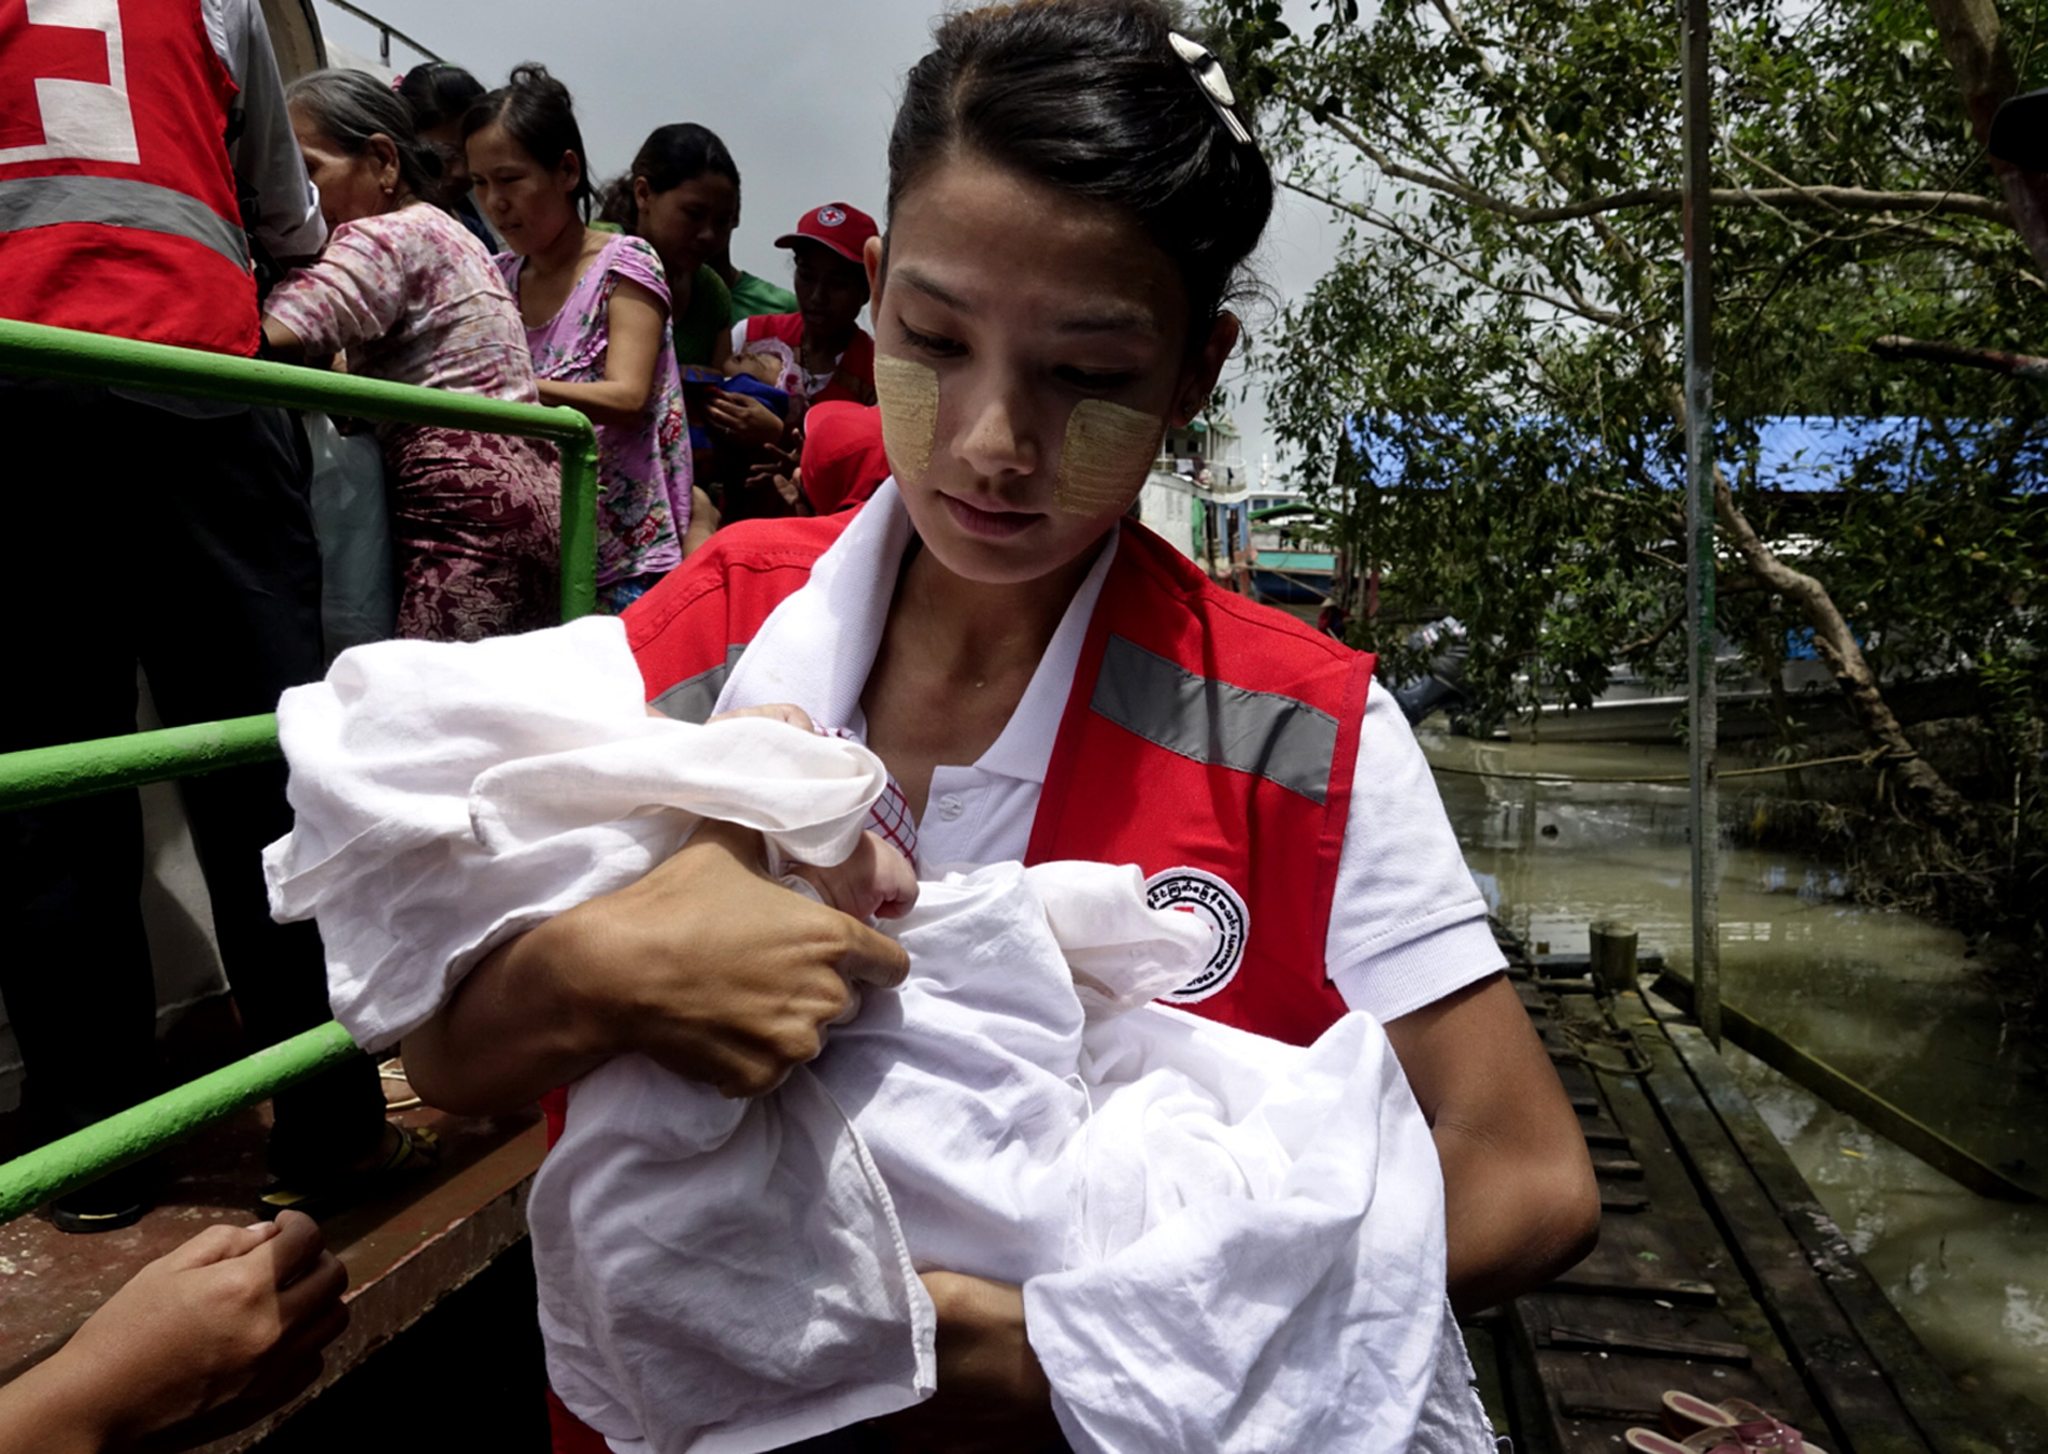 A Red Cross volunteer carries a child who was displaced together with a Rakhine ethnic woman from Maungdaw at the Sittwe port, Rakhine State, Myanmar, 30 Aug. 2017.